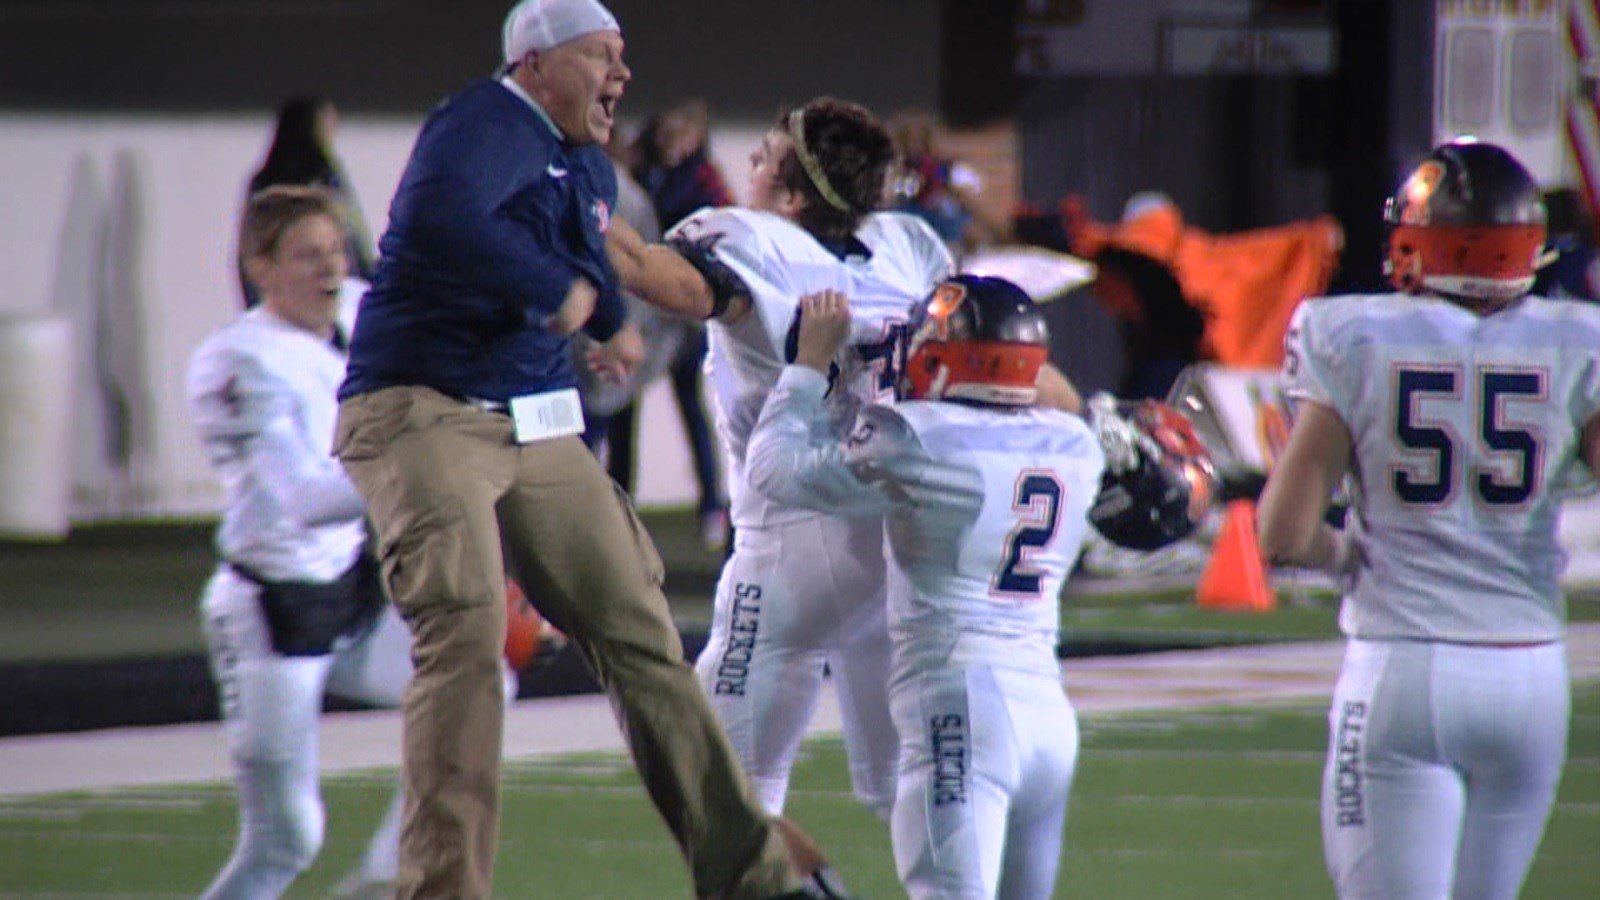 Rochester has won seven of eight state championships in 4A, including two in a row.